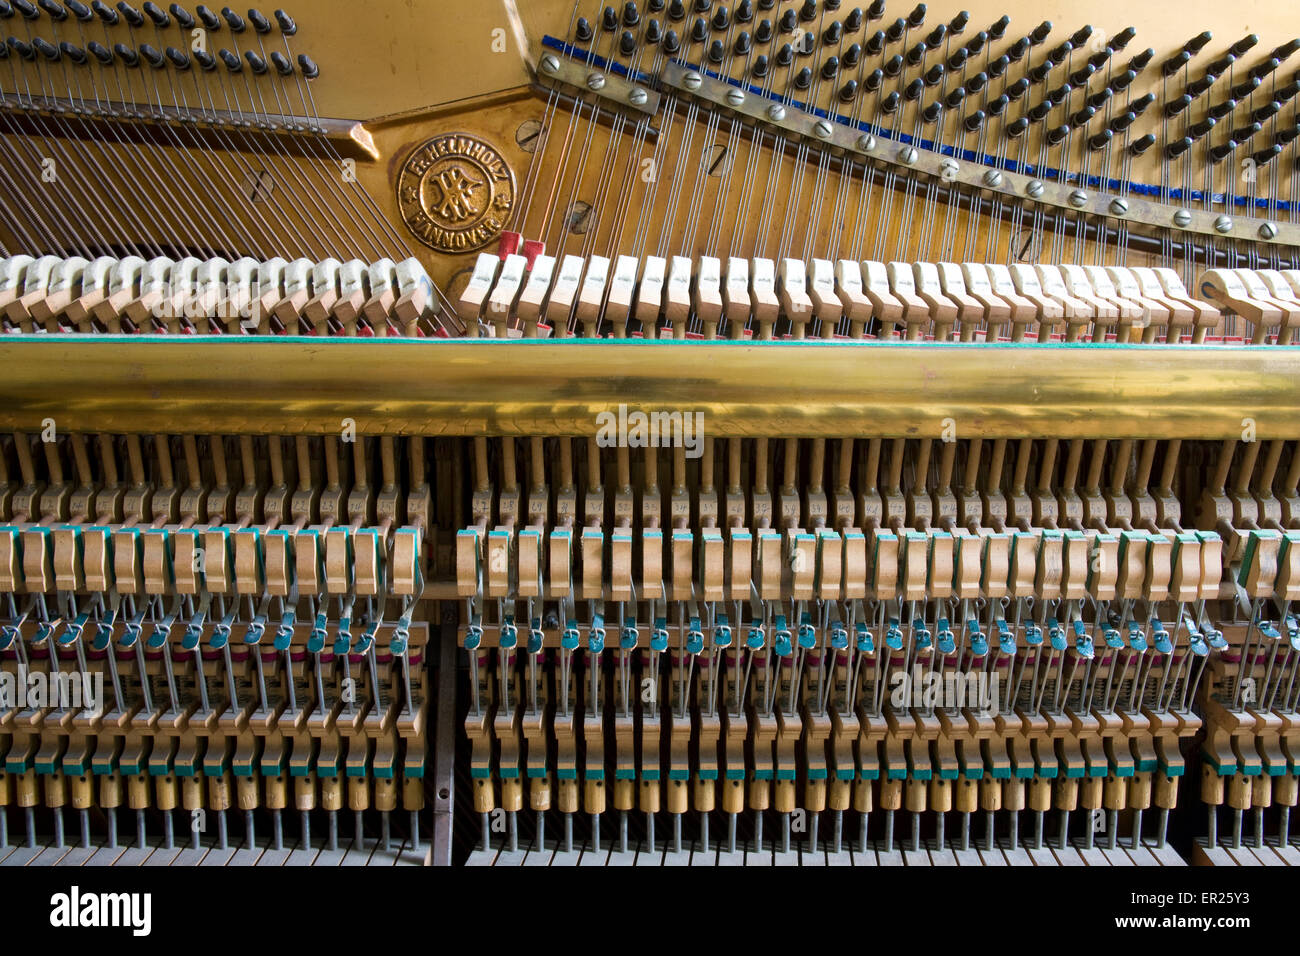 Europe, Germany, opened piano of the manufacturer Helmholz, manufactured in the early 20th century.   Euopa, Deutschland, - Stock Image